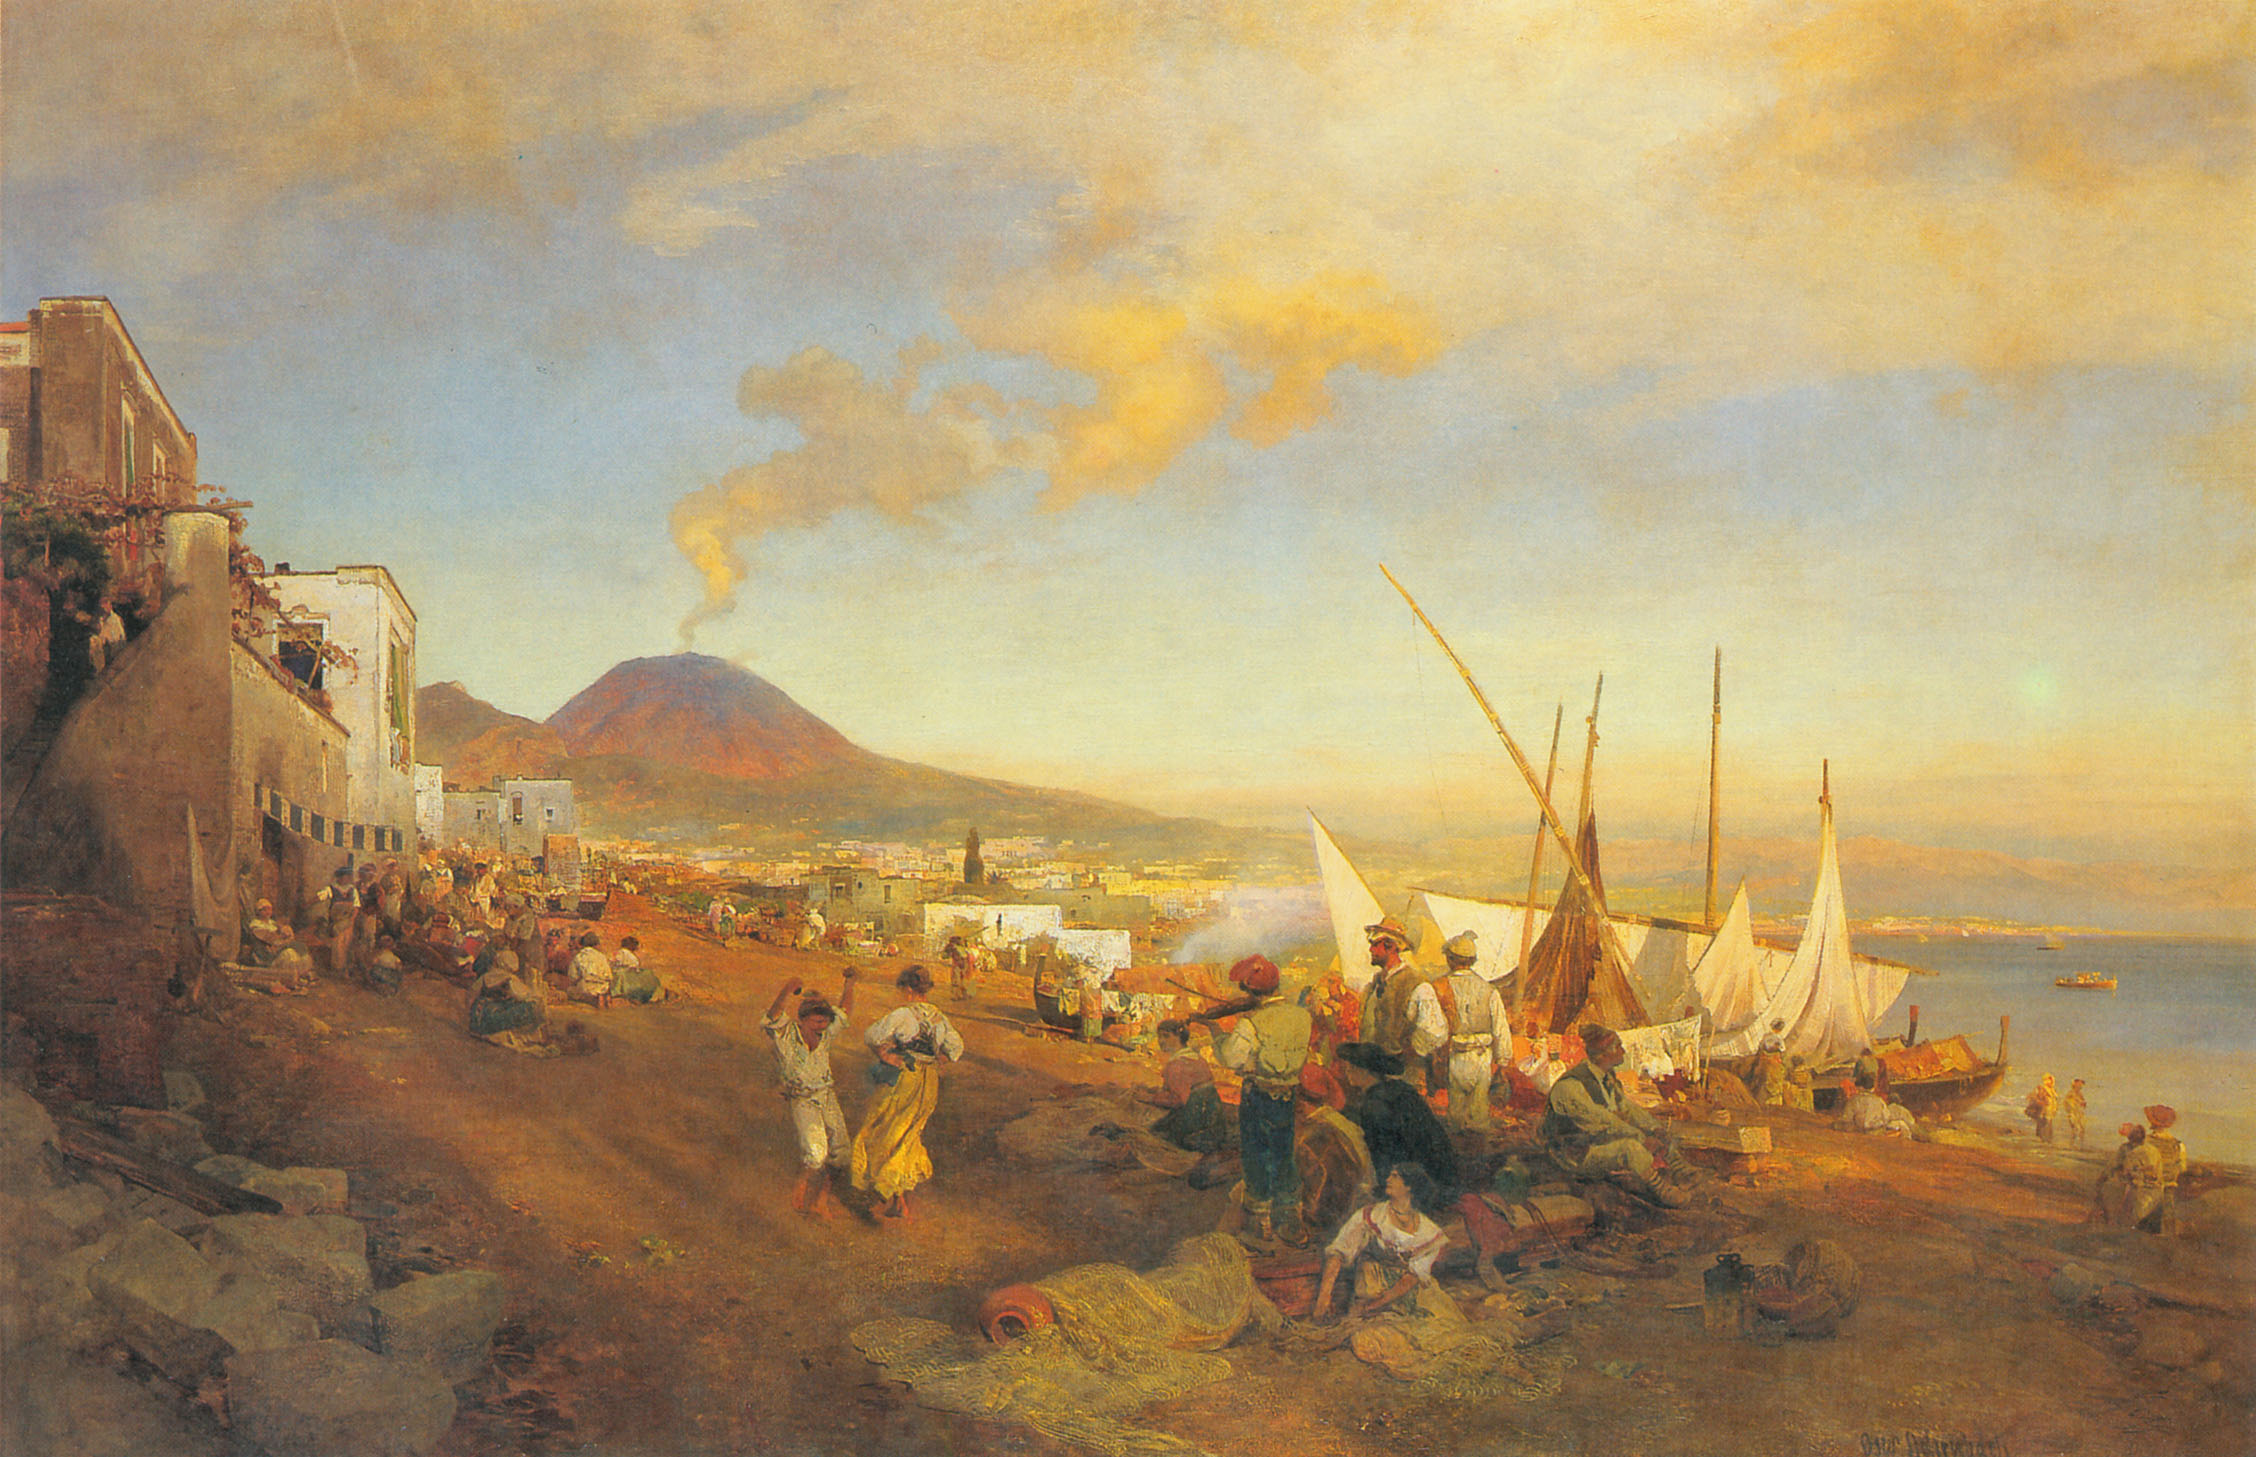 the beach in Naples a 19th century painting by Oswald Achenbach